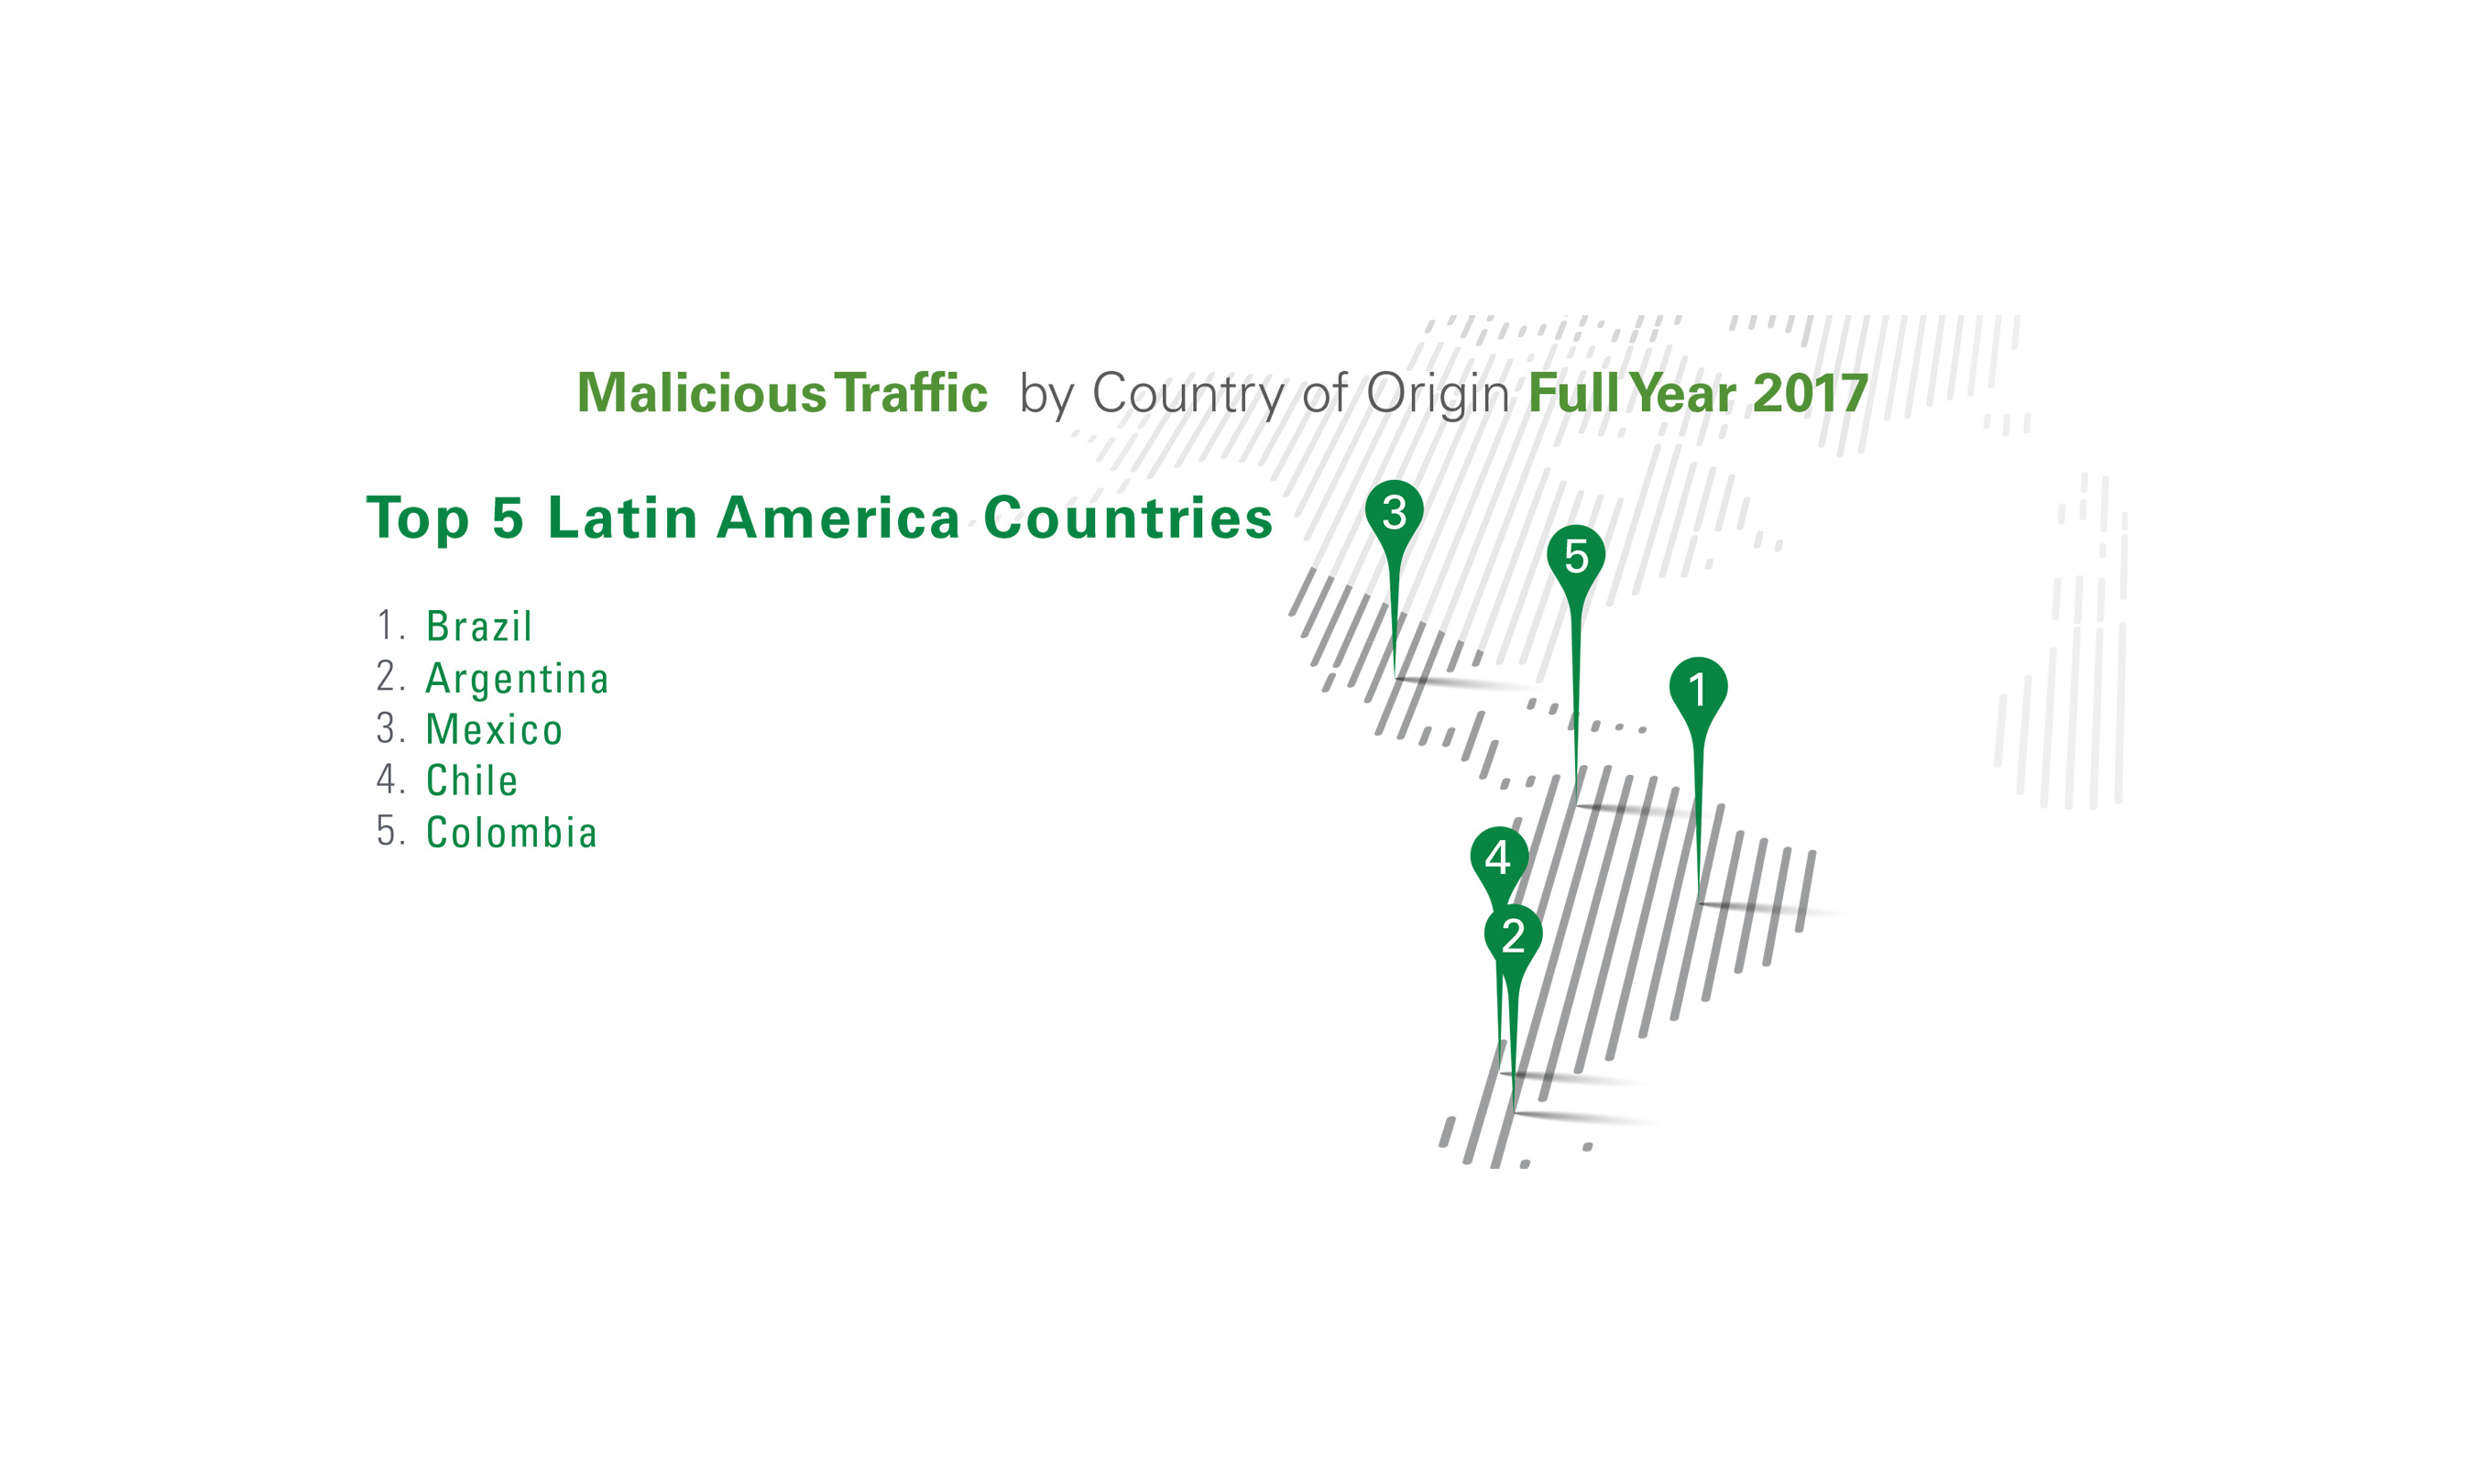 The top five countries generating malicious internet traffic in Latin America.